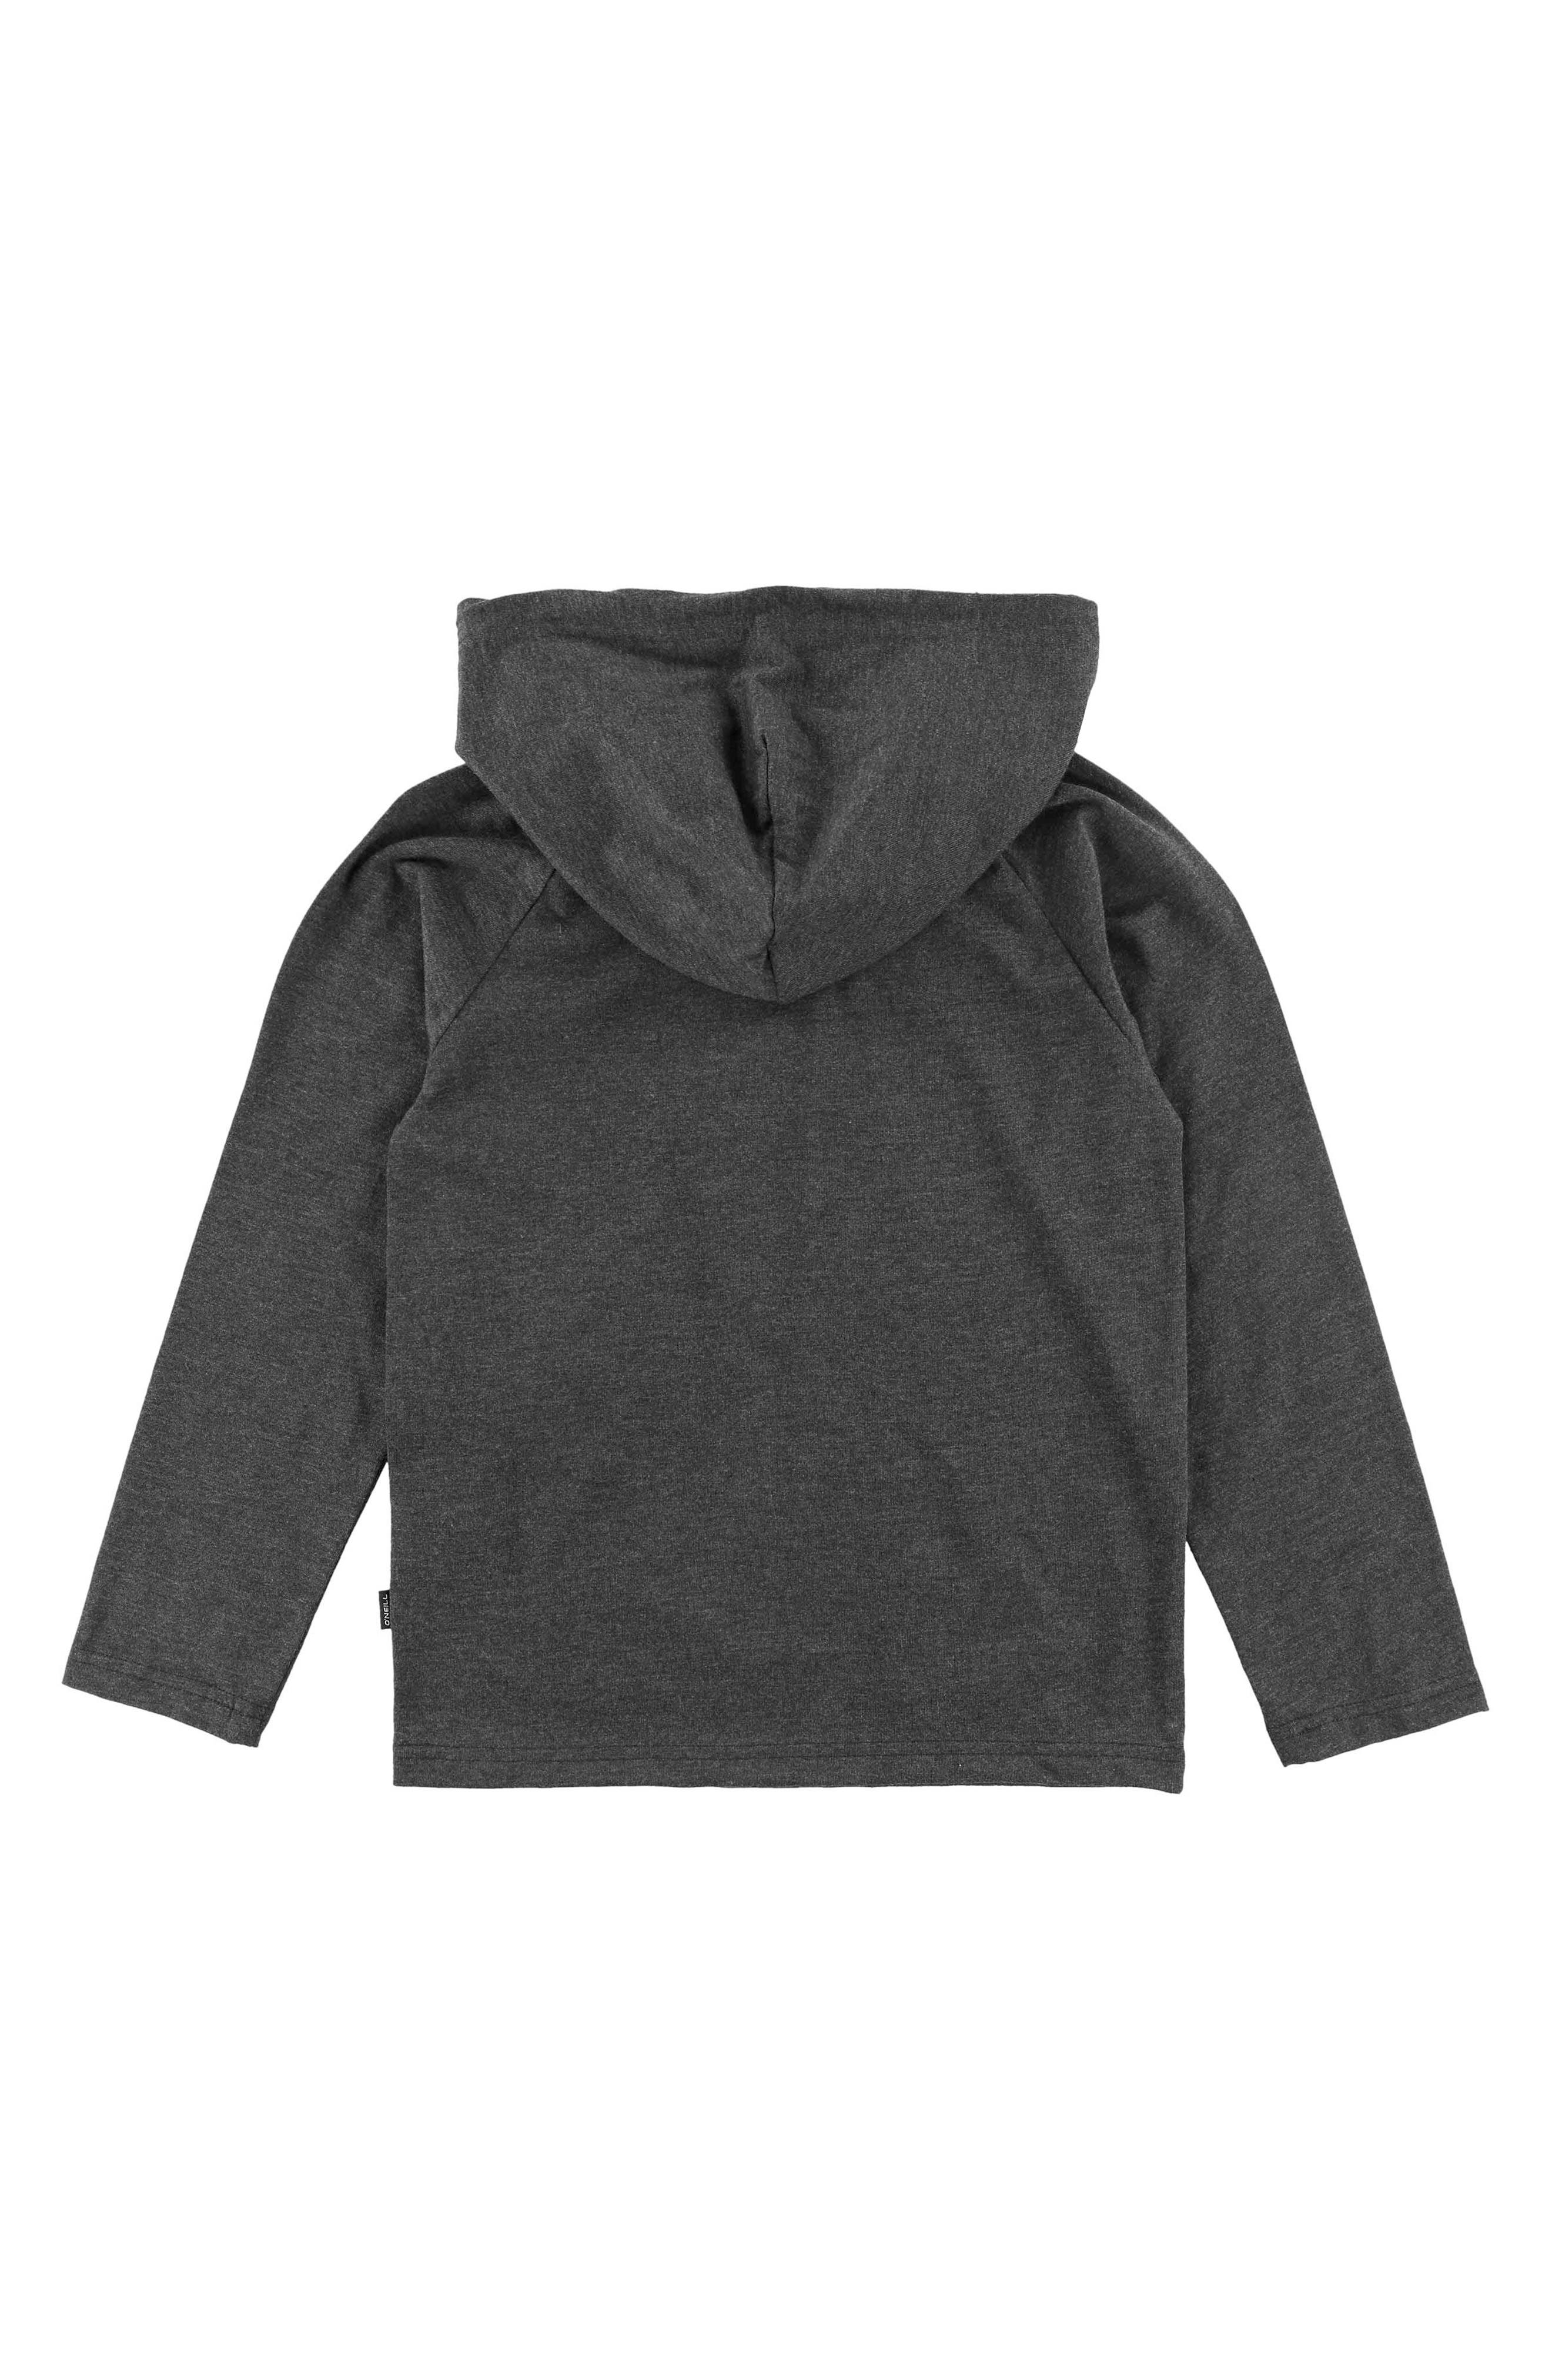 O'NEILL Weddle Hoodie, Main, color, 001